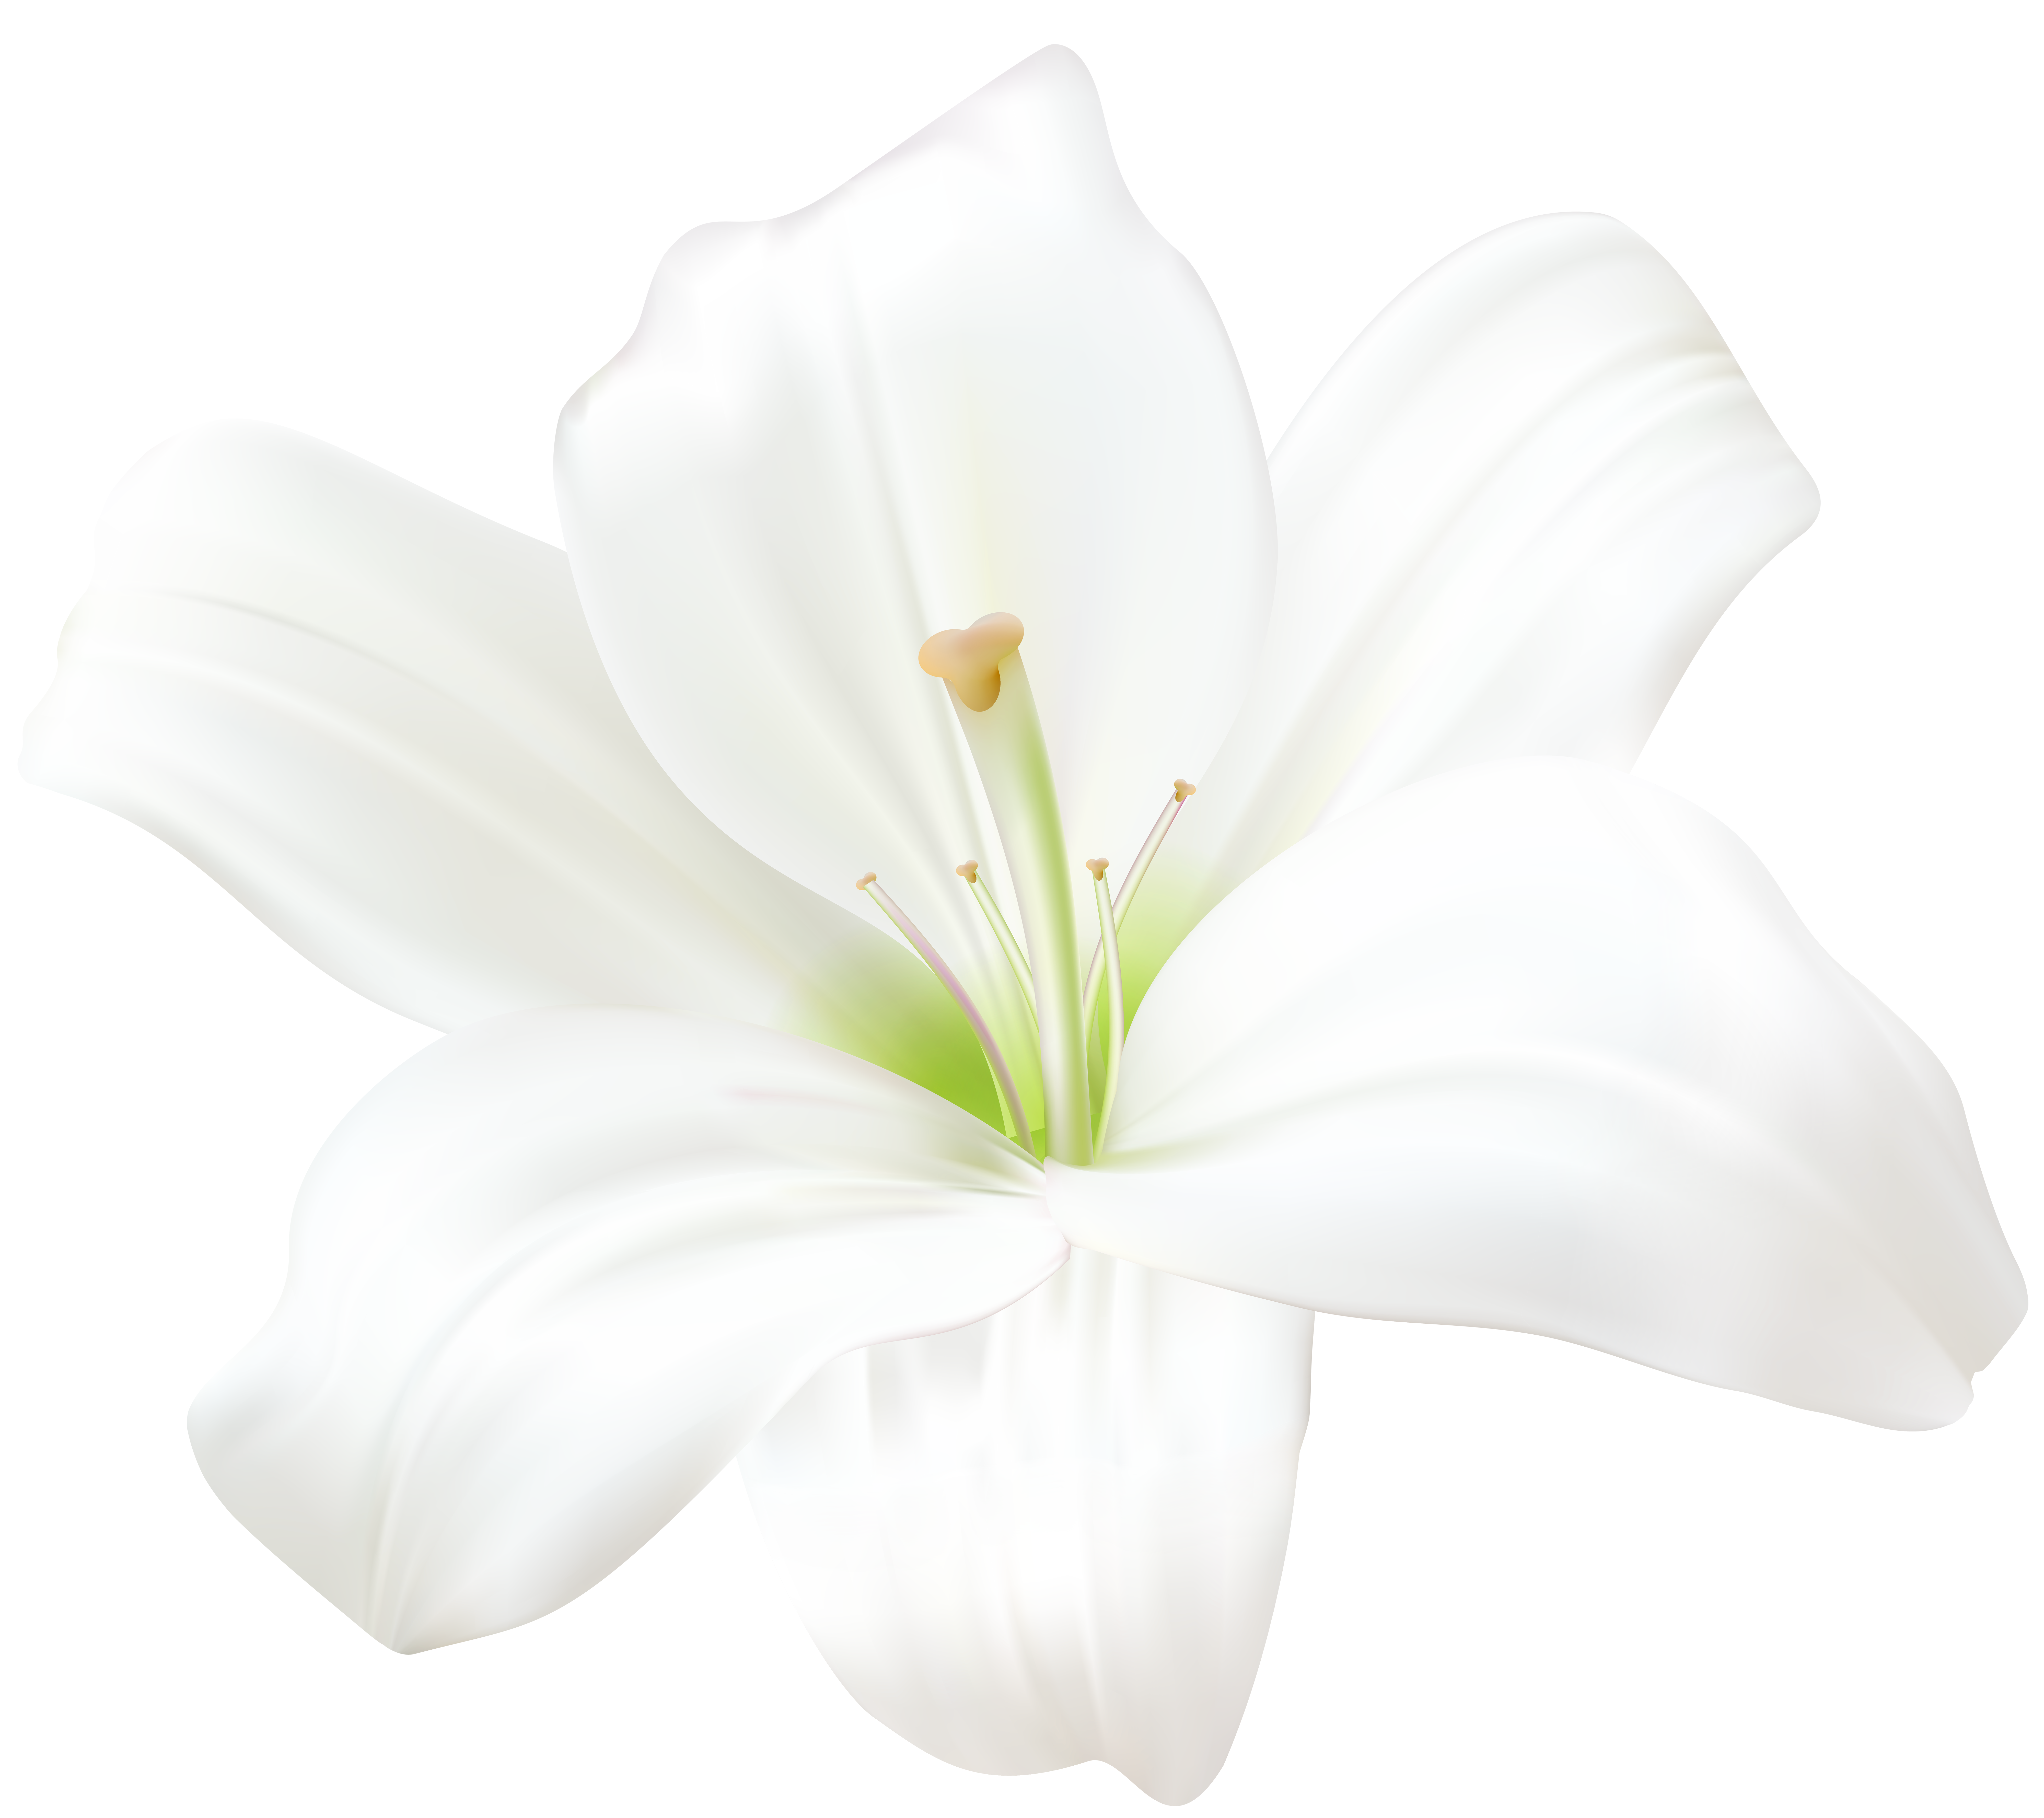 Flower Black And White Transparent Png Pictures: Free Icons And PNG Backgrounds